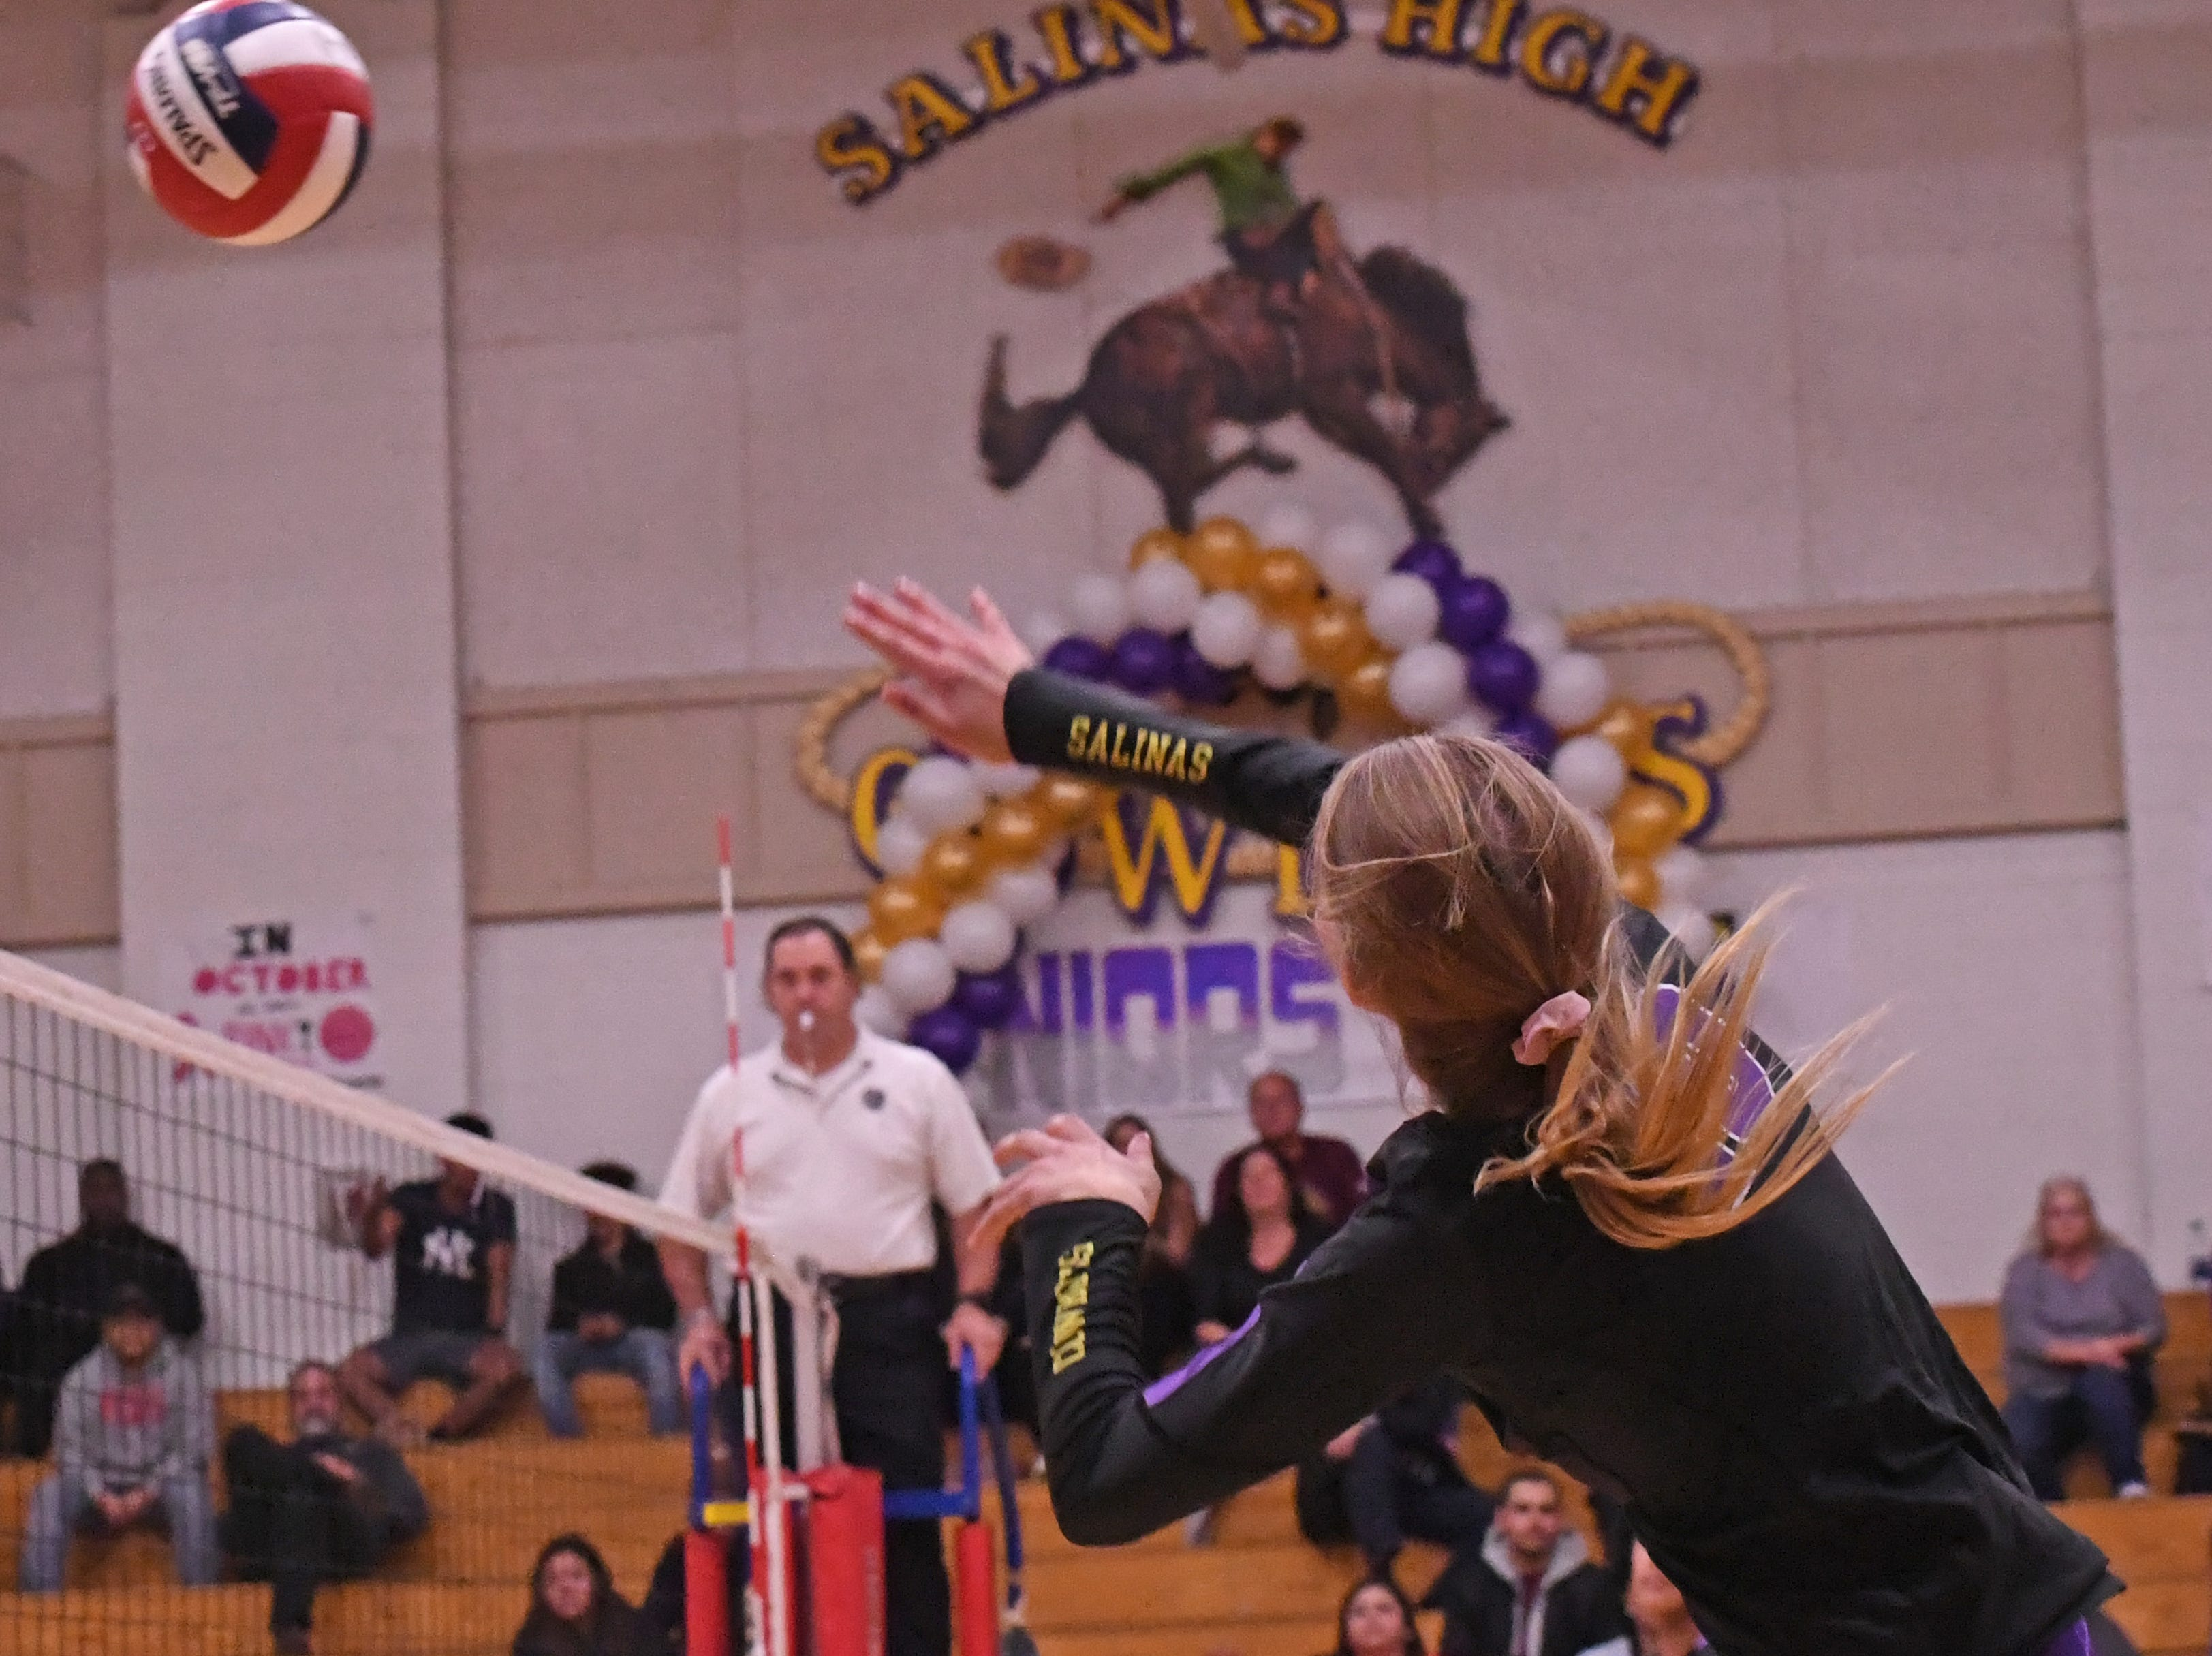 Outside hitter Ashleigh Souza (10) hits the ball over the net in the first set.